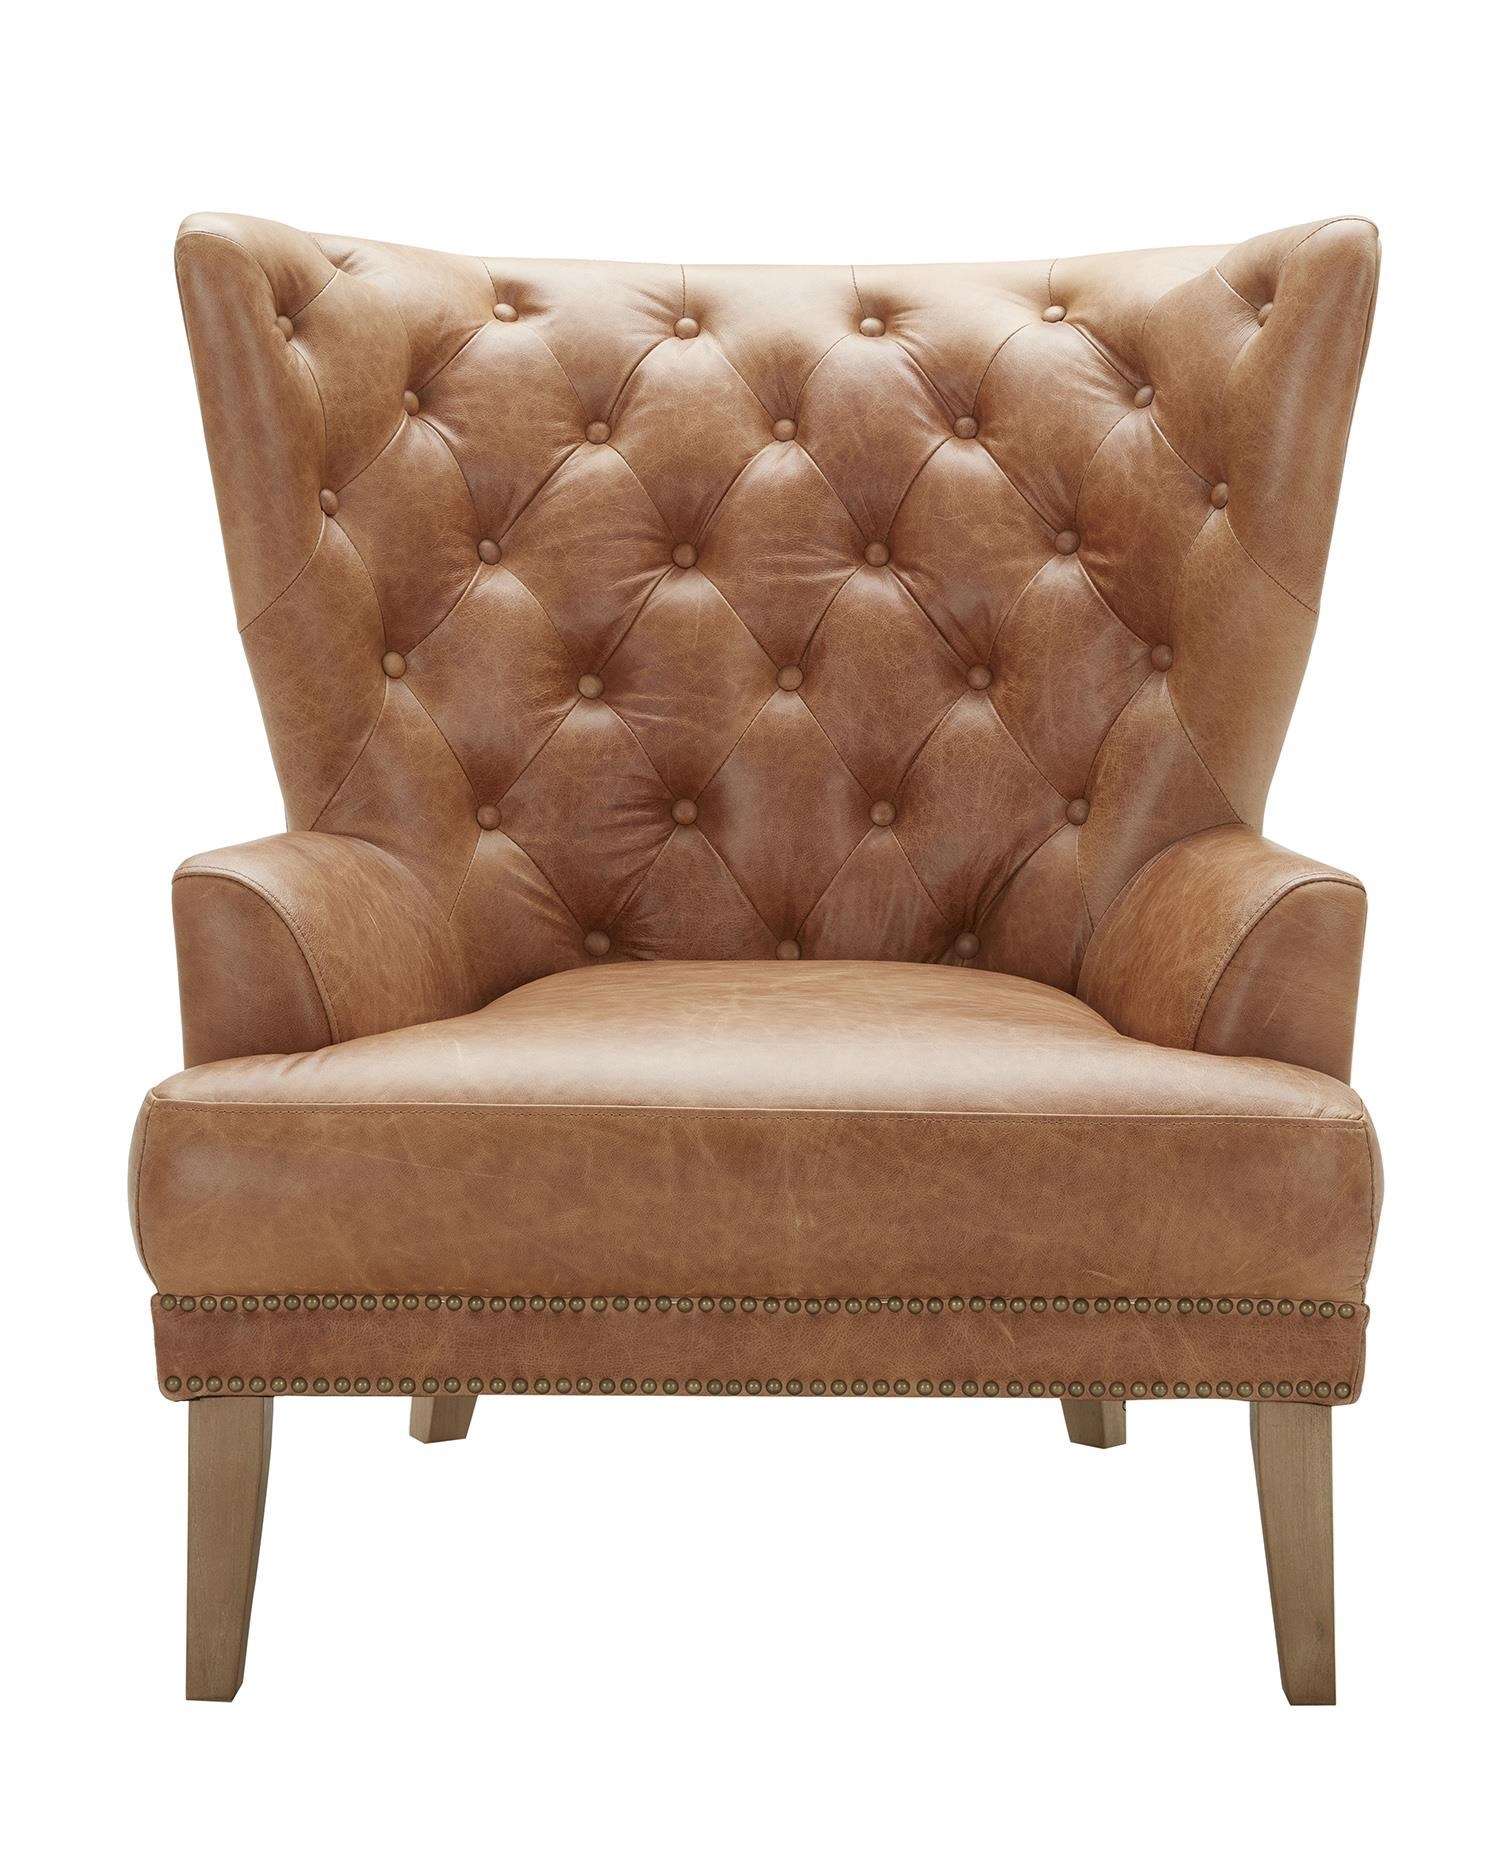 Urban Evolution Grandin Tufted Leather Chair  sc 1 st  Belfort Furniture & Urban Evolution Grandin Tufted Leather Chair | Belfort Furniture ...